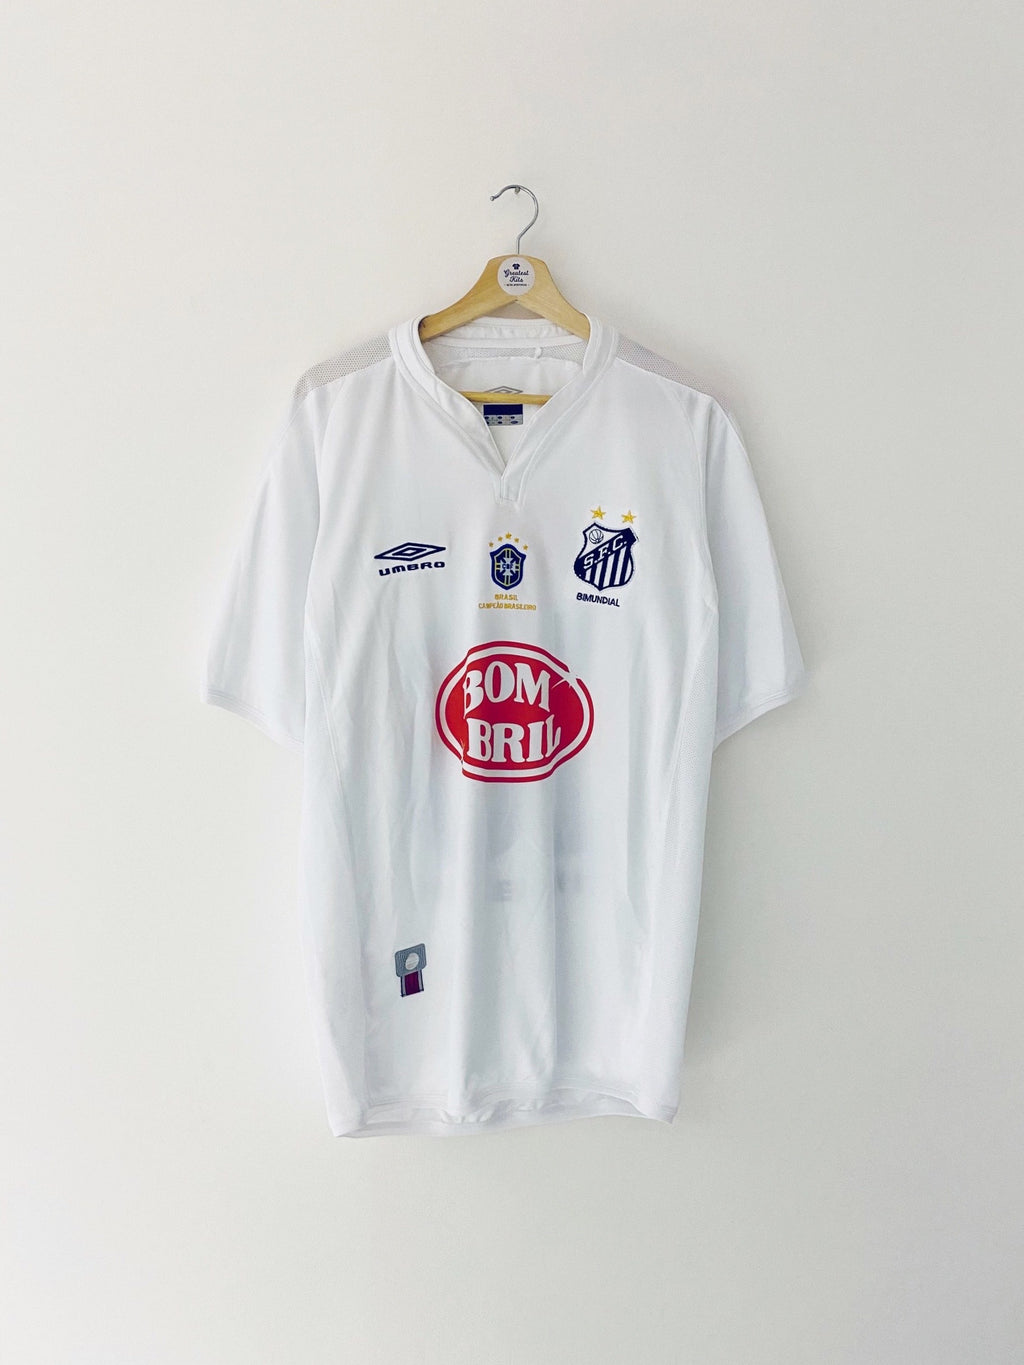 2003 Santos Home Shirt #10 (Diego) (L) 9/10